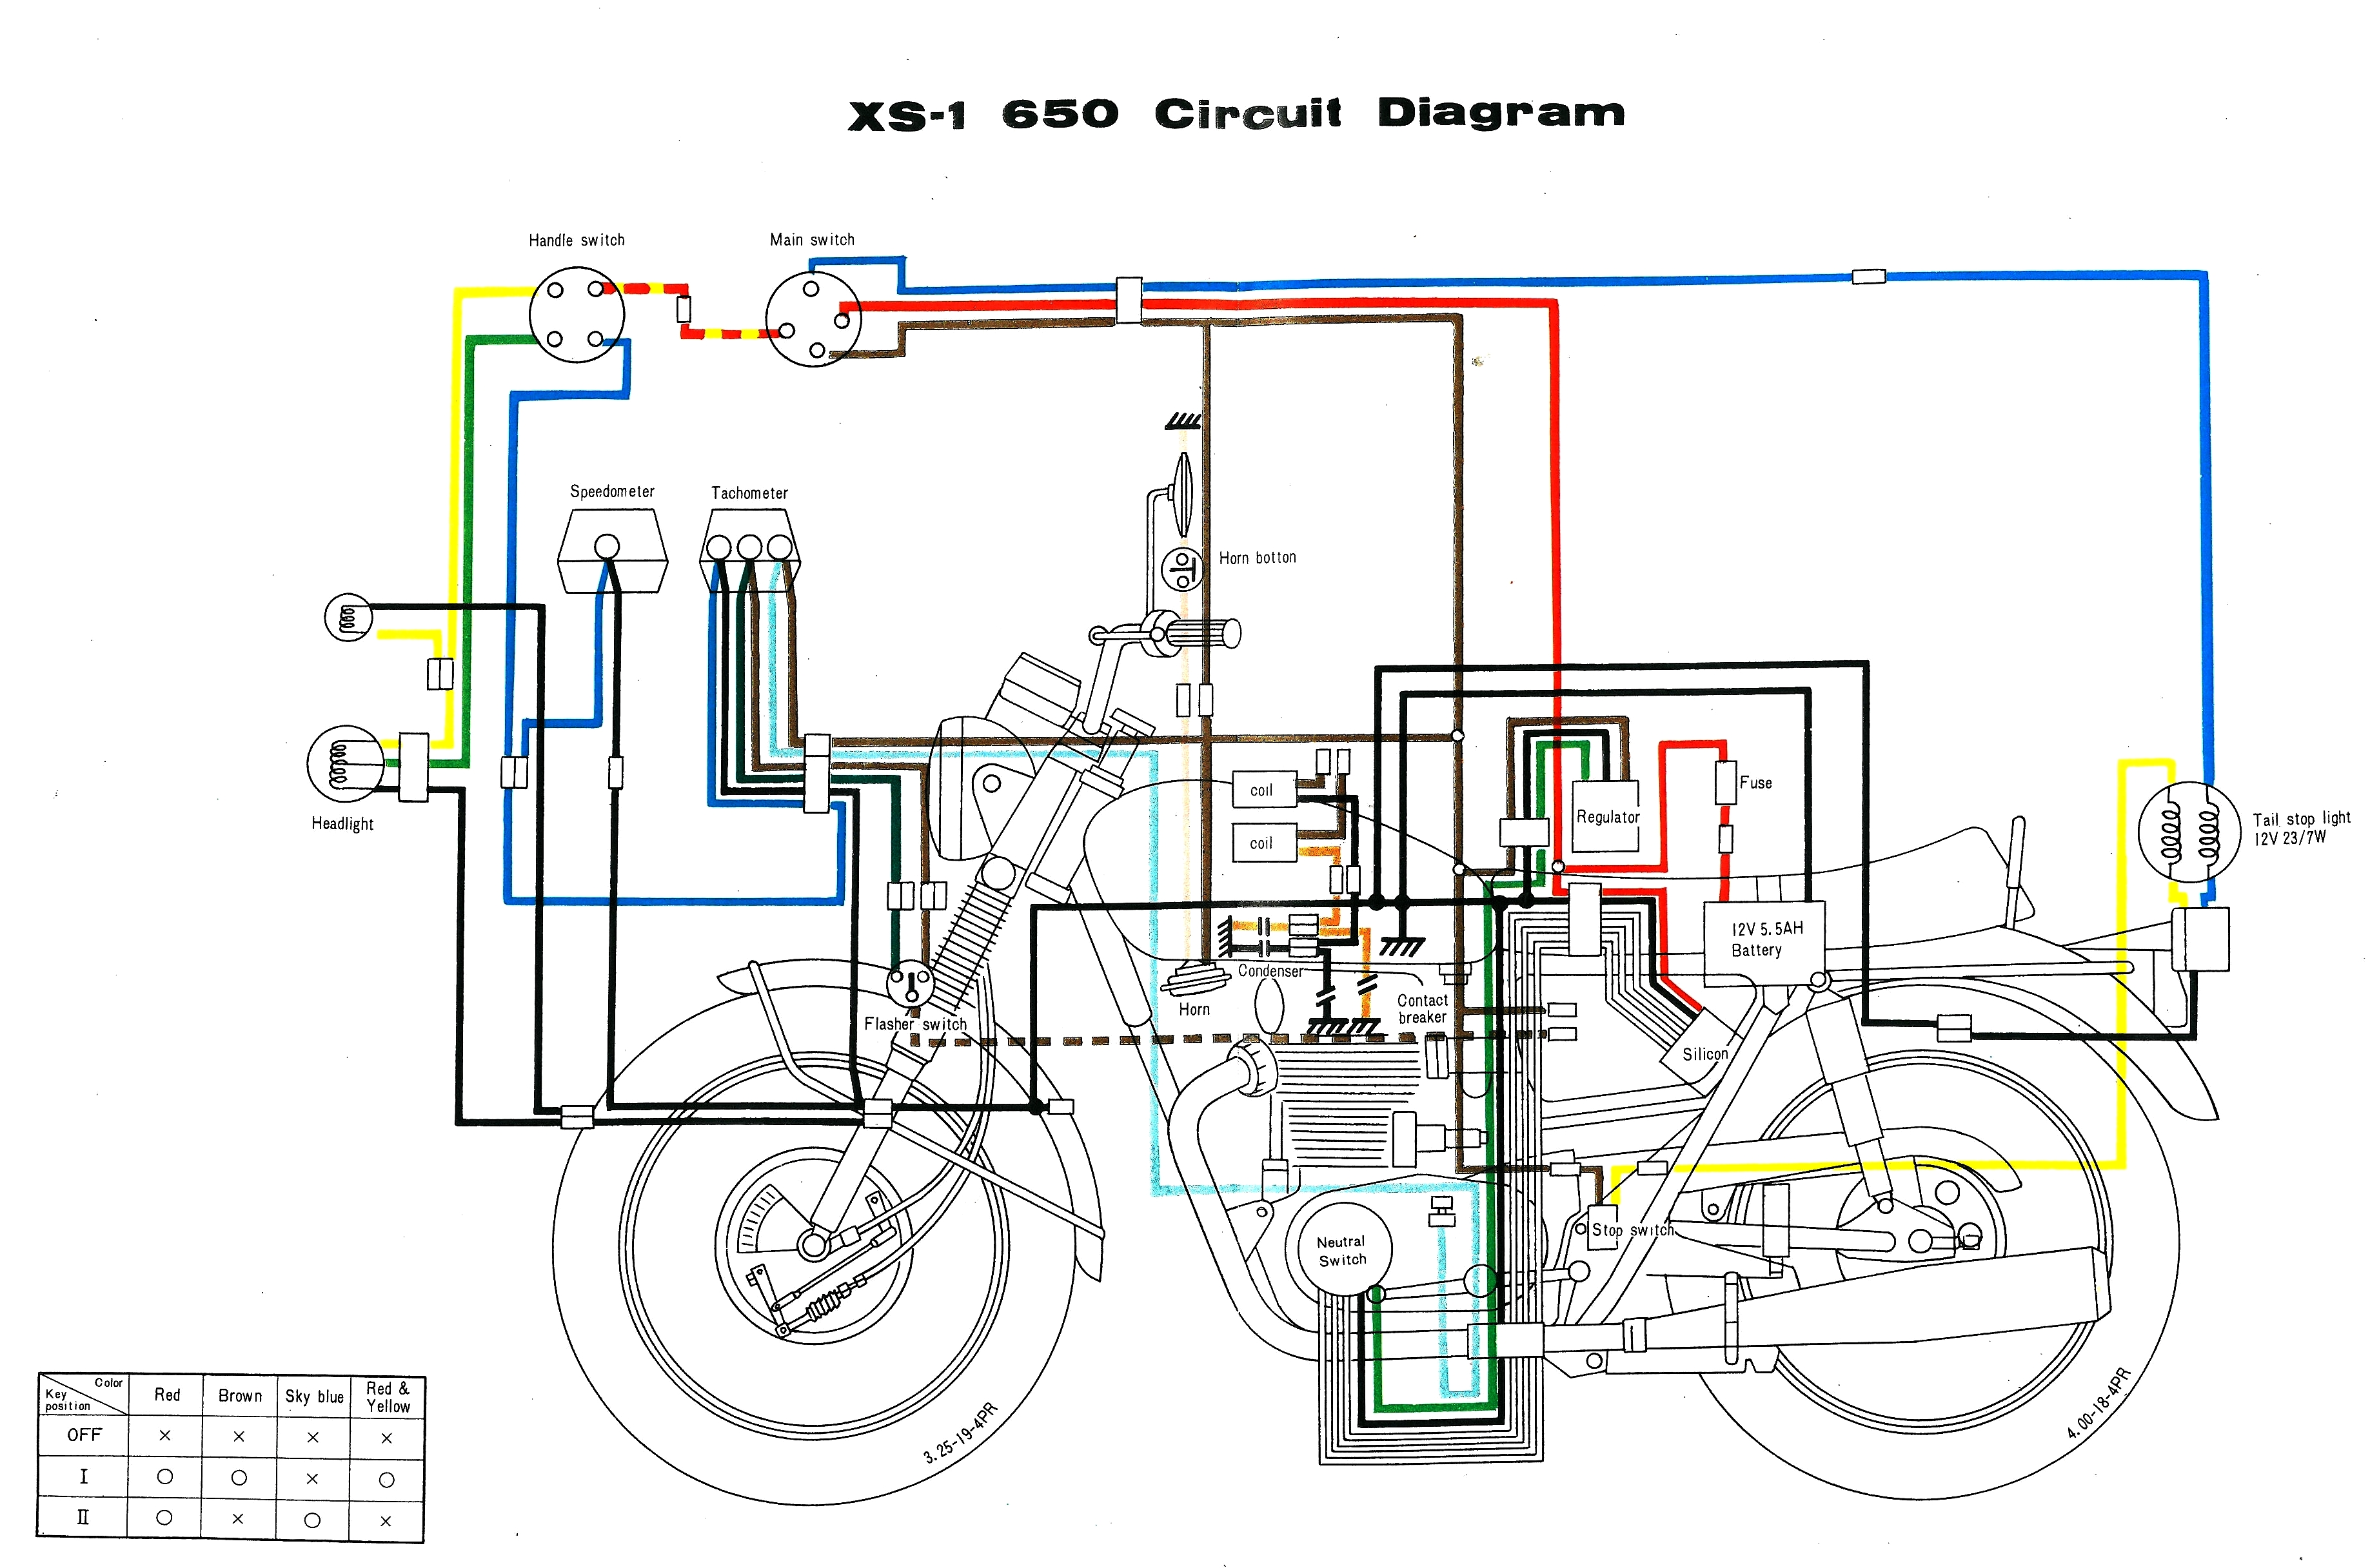 70 xs1 wiring diagram1 elec diagram thexscafe 1975 xs650 wiring diagram at gsmx.co